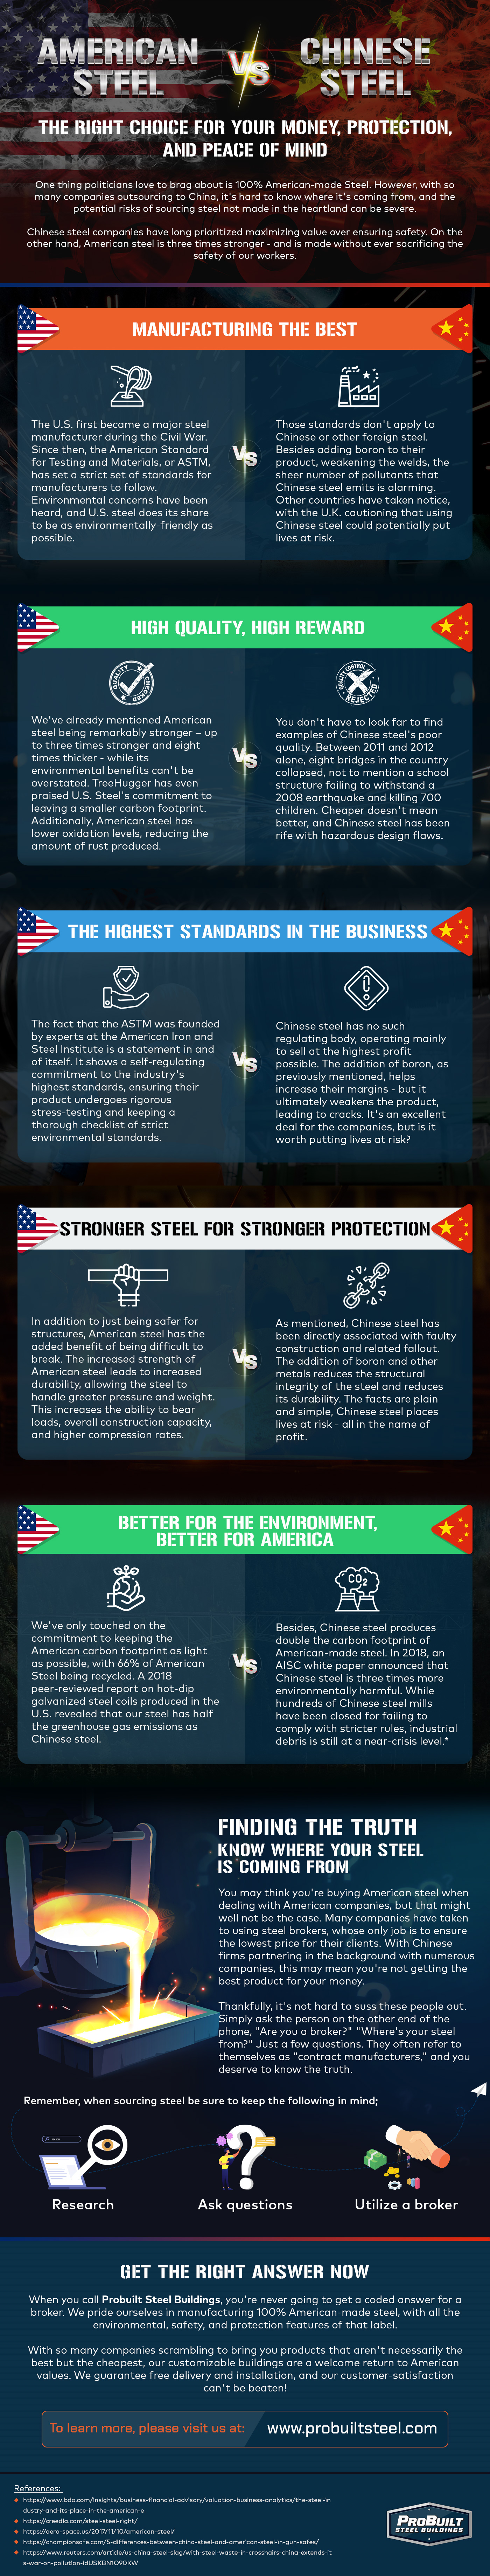 American vs. Chinese Steel: The Best Price is Not Always the Best Option - Infographic